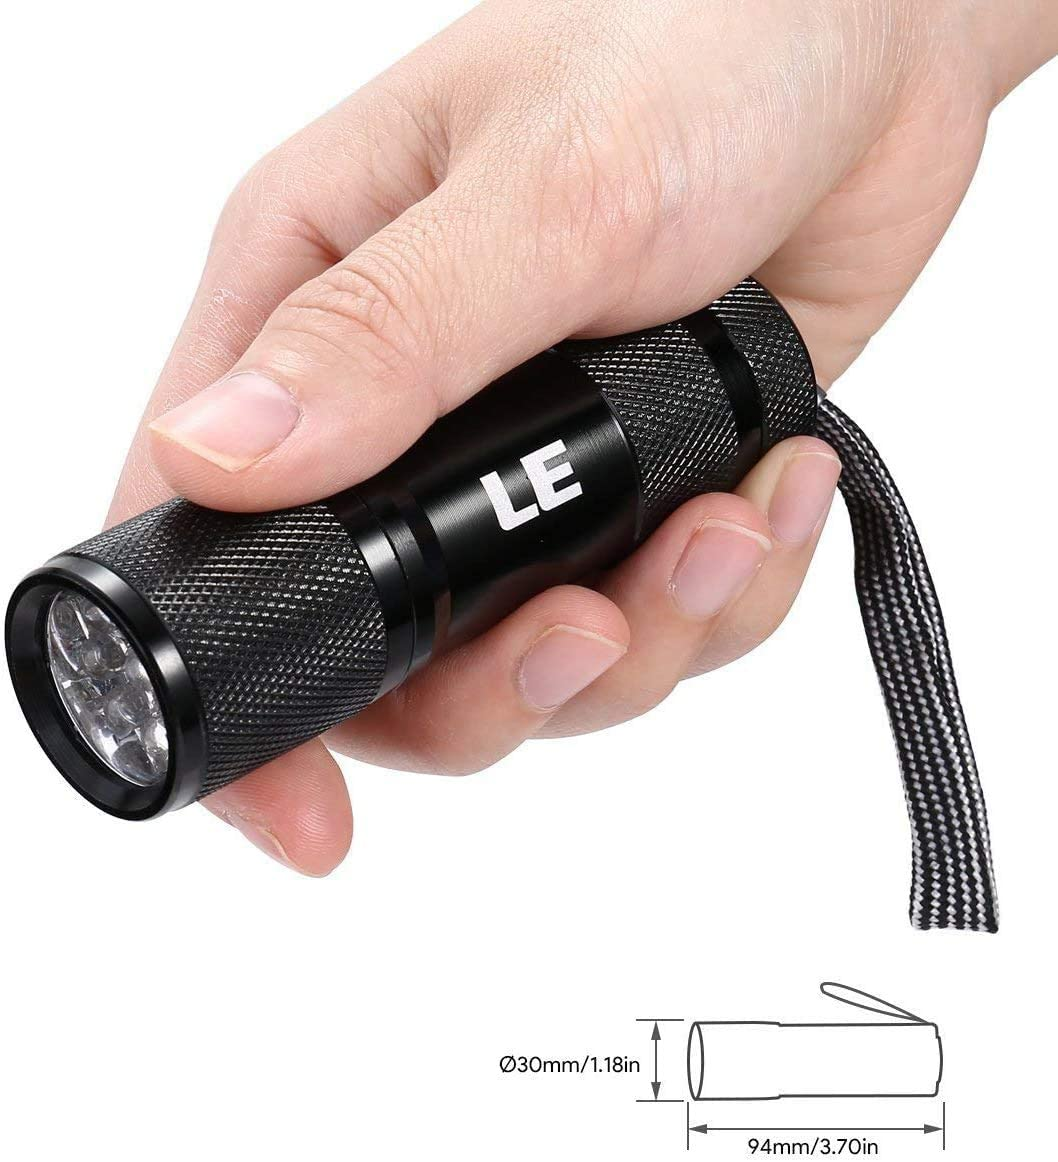 Image of a hand holding a UV flashlight, color black.